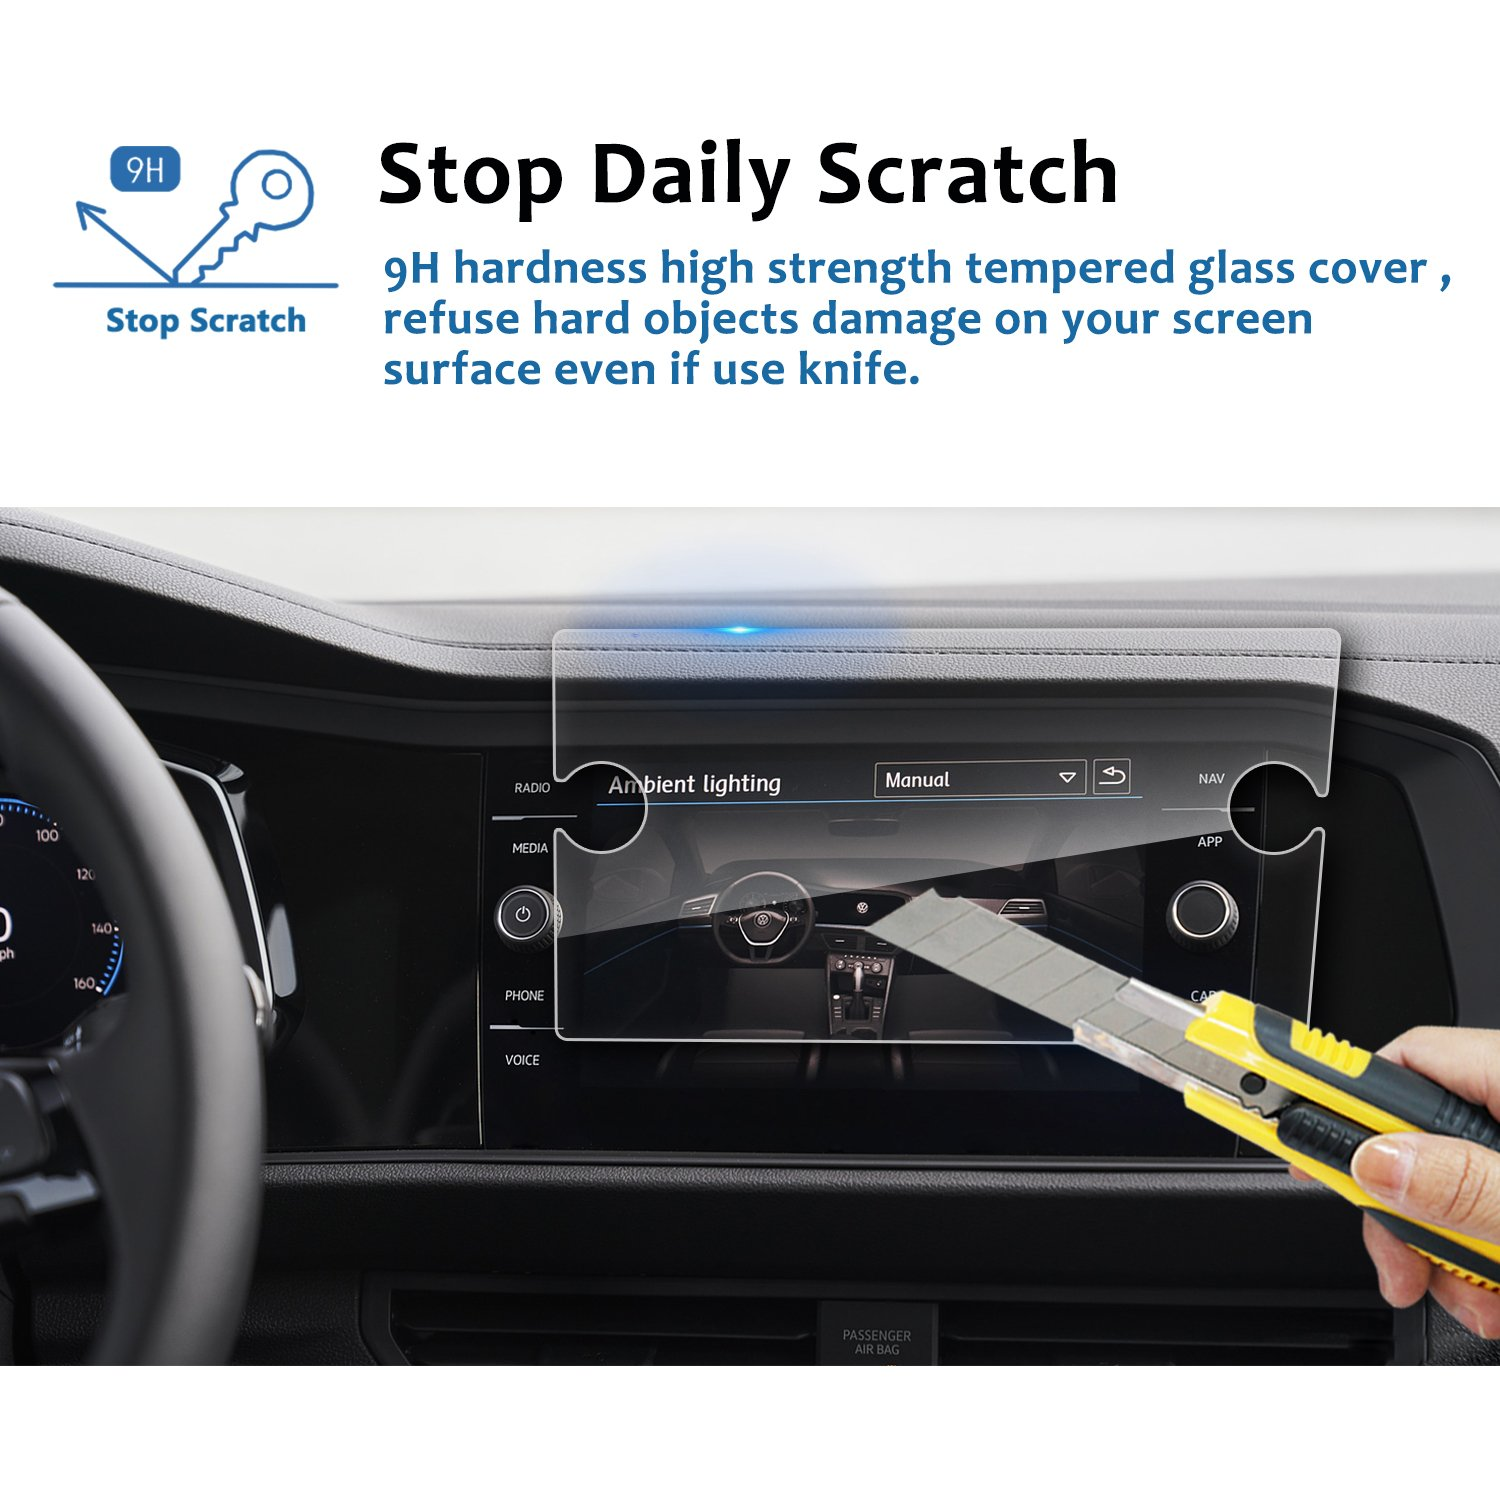 LFOTPP Car Navigation Screen Protector for 2019 Jetta GLI 8-Inch,Clear Tempered Glass Infotainment Display in-Dash Center Touch Screen Protector ...